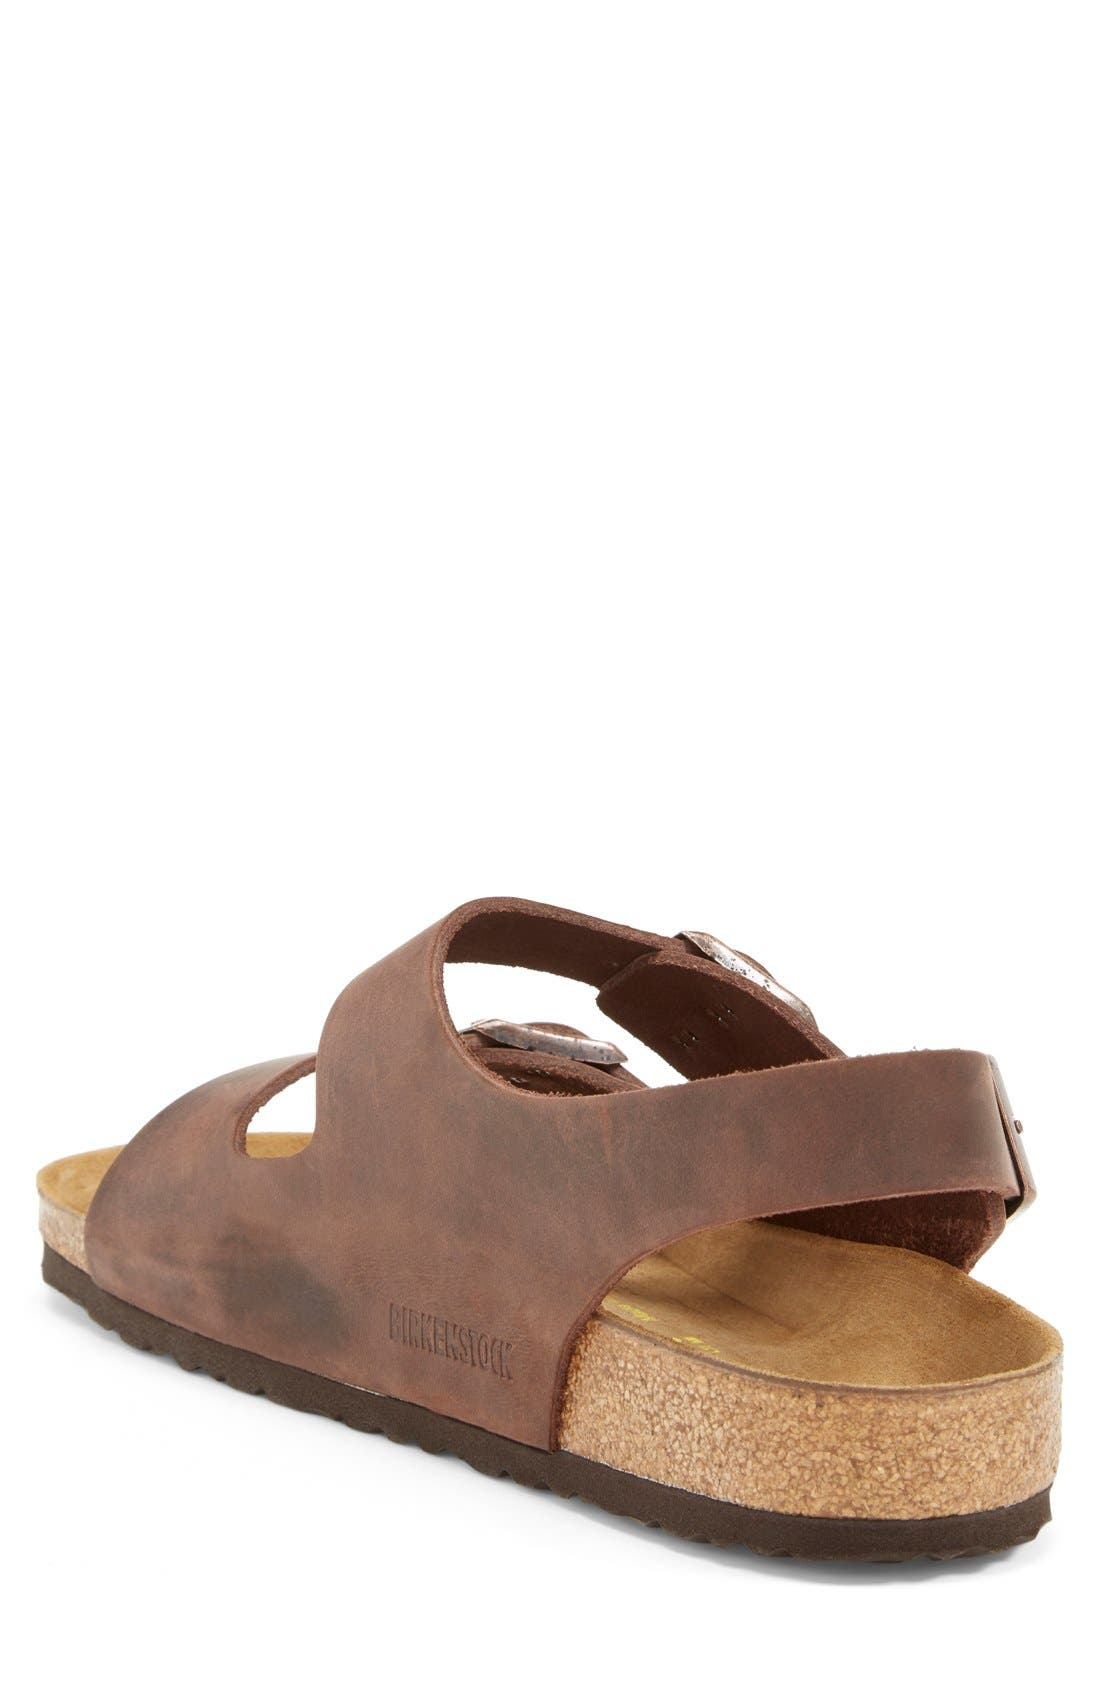 'Milano' Sandal,                             Alternate thumbnail 2, color,                             Habana Oiled